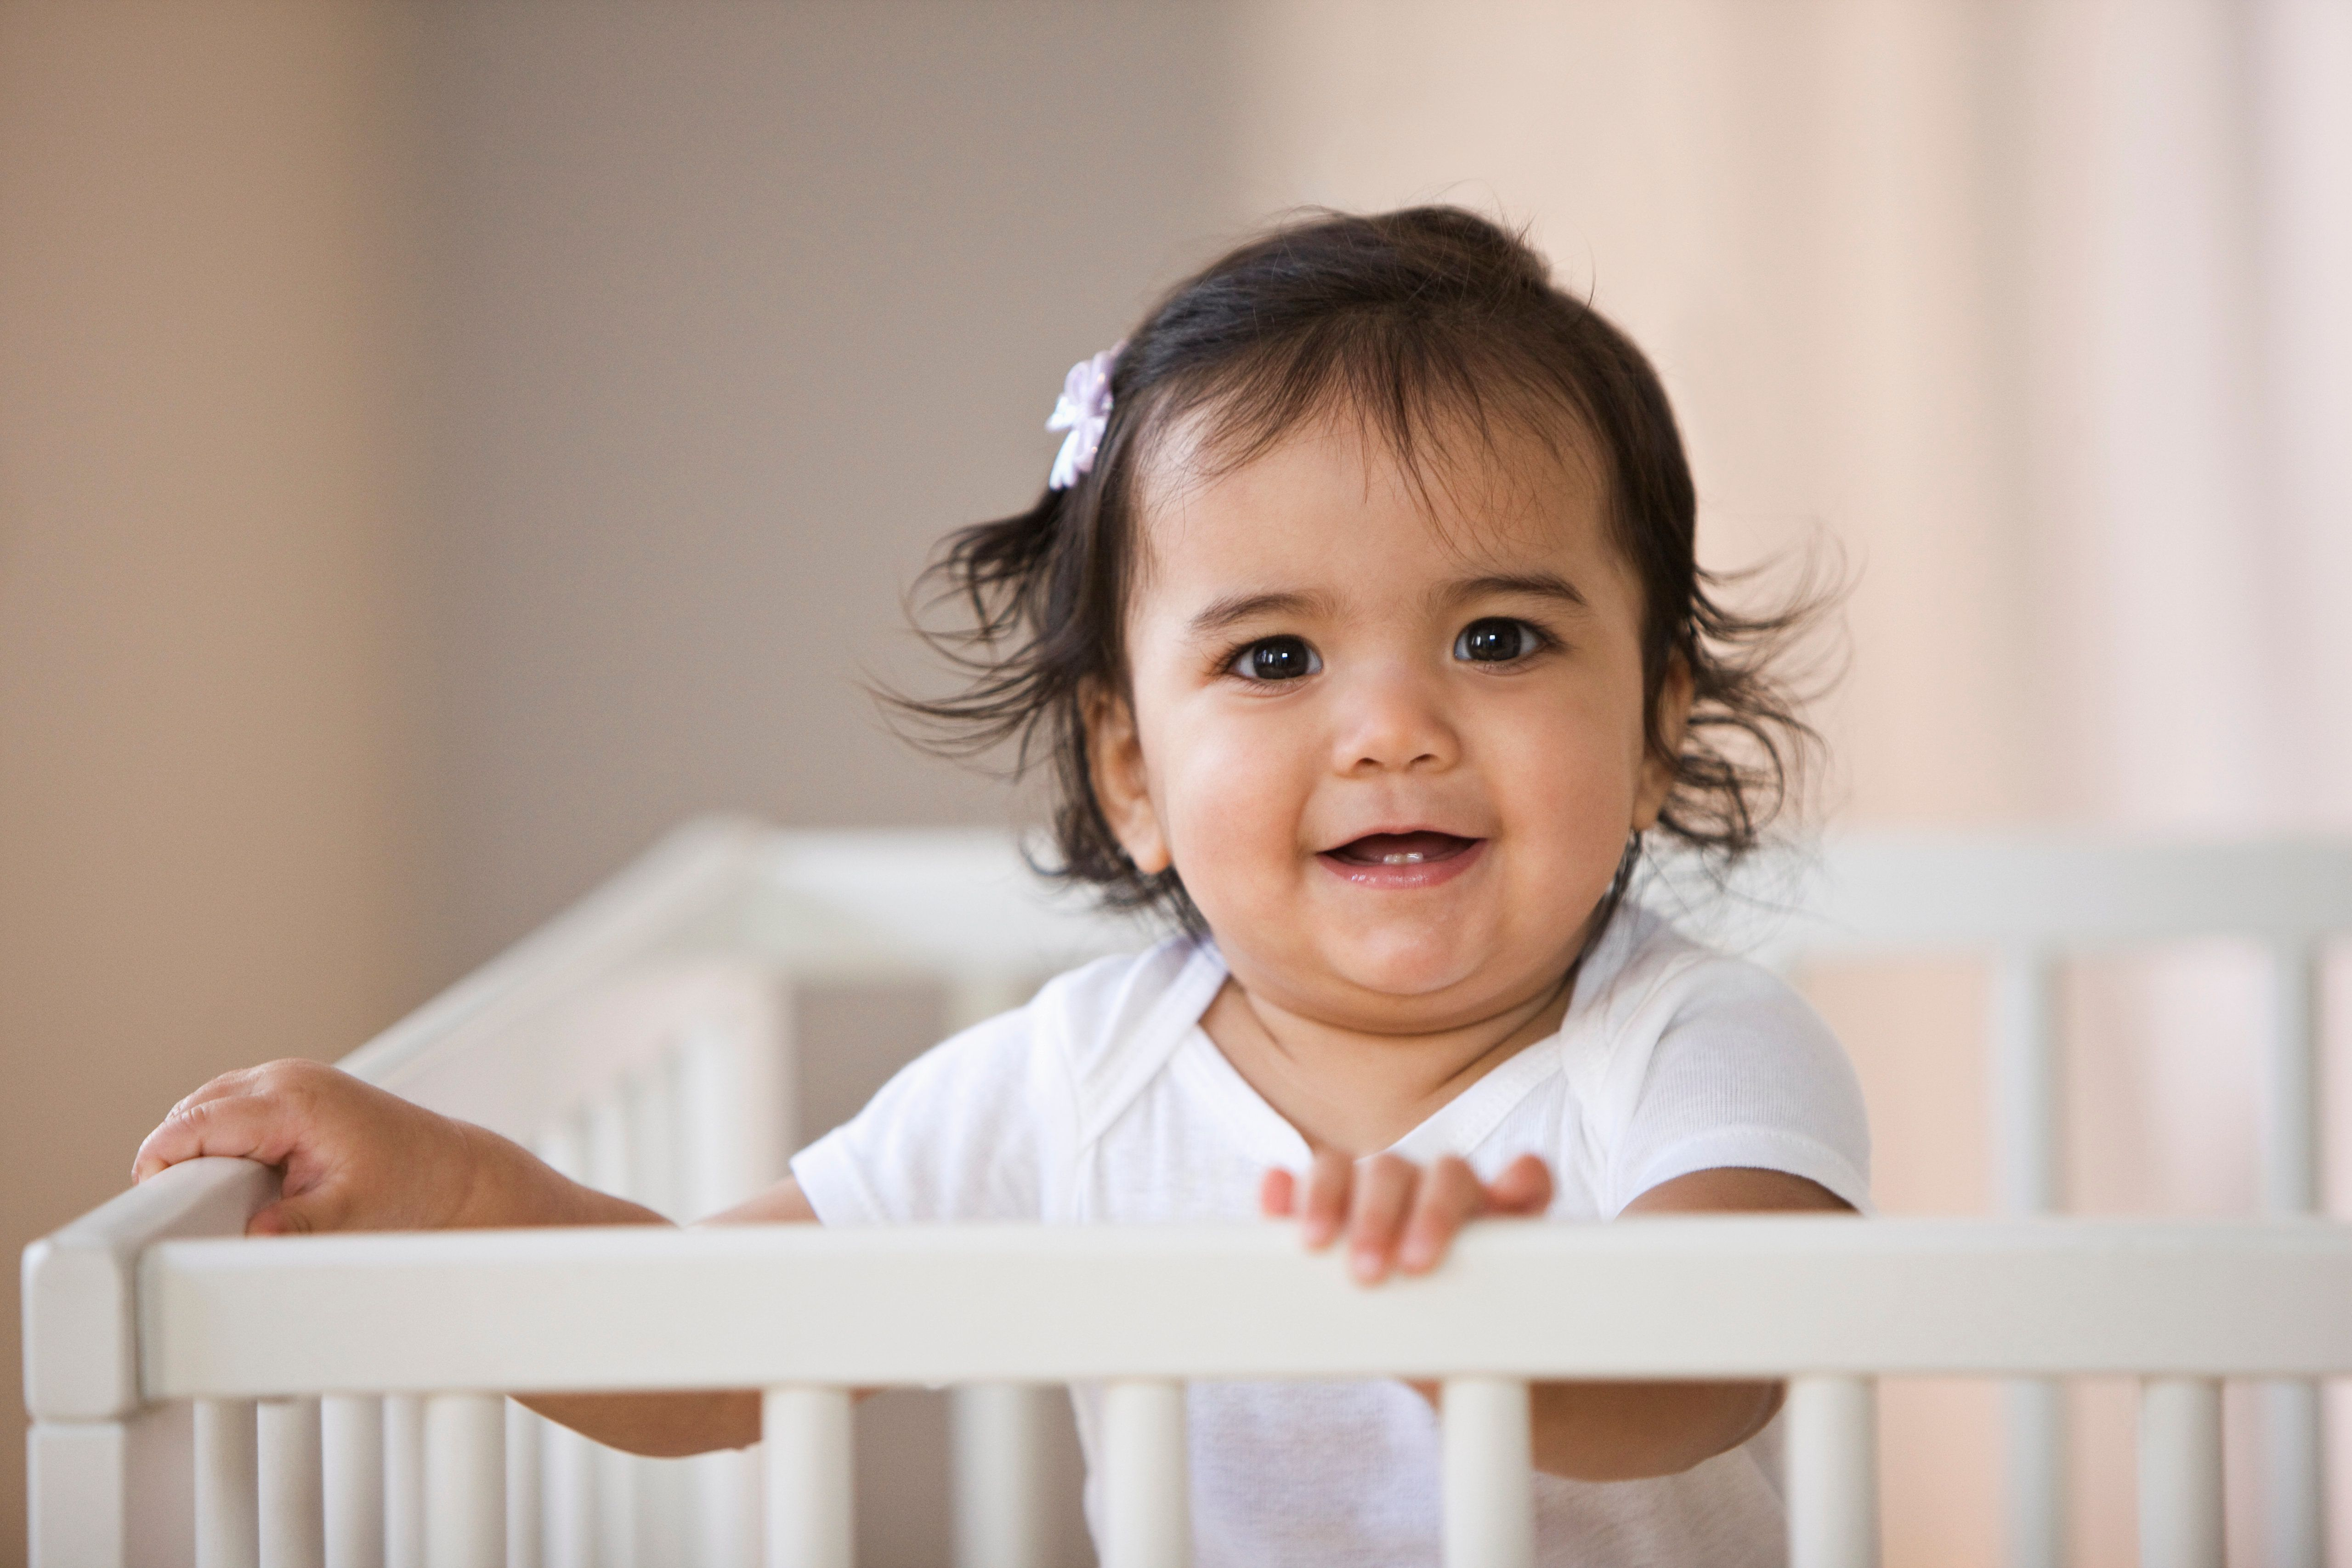 Victoria was the top name for baby girls born in Puerto Rico in 2017.